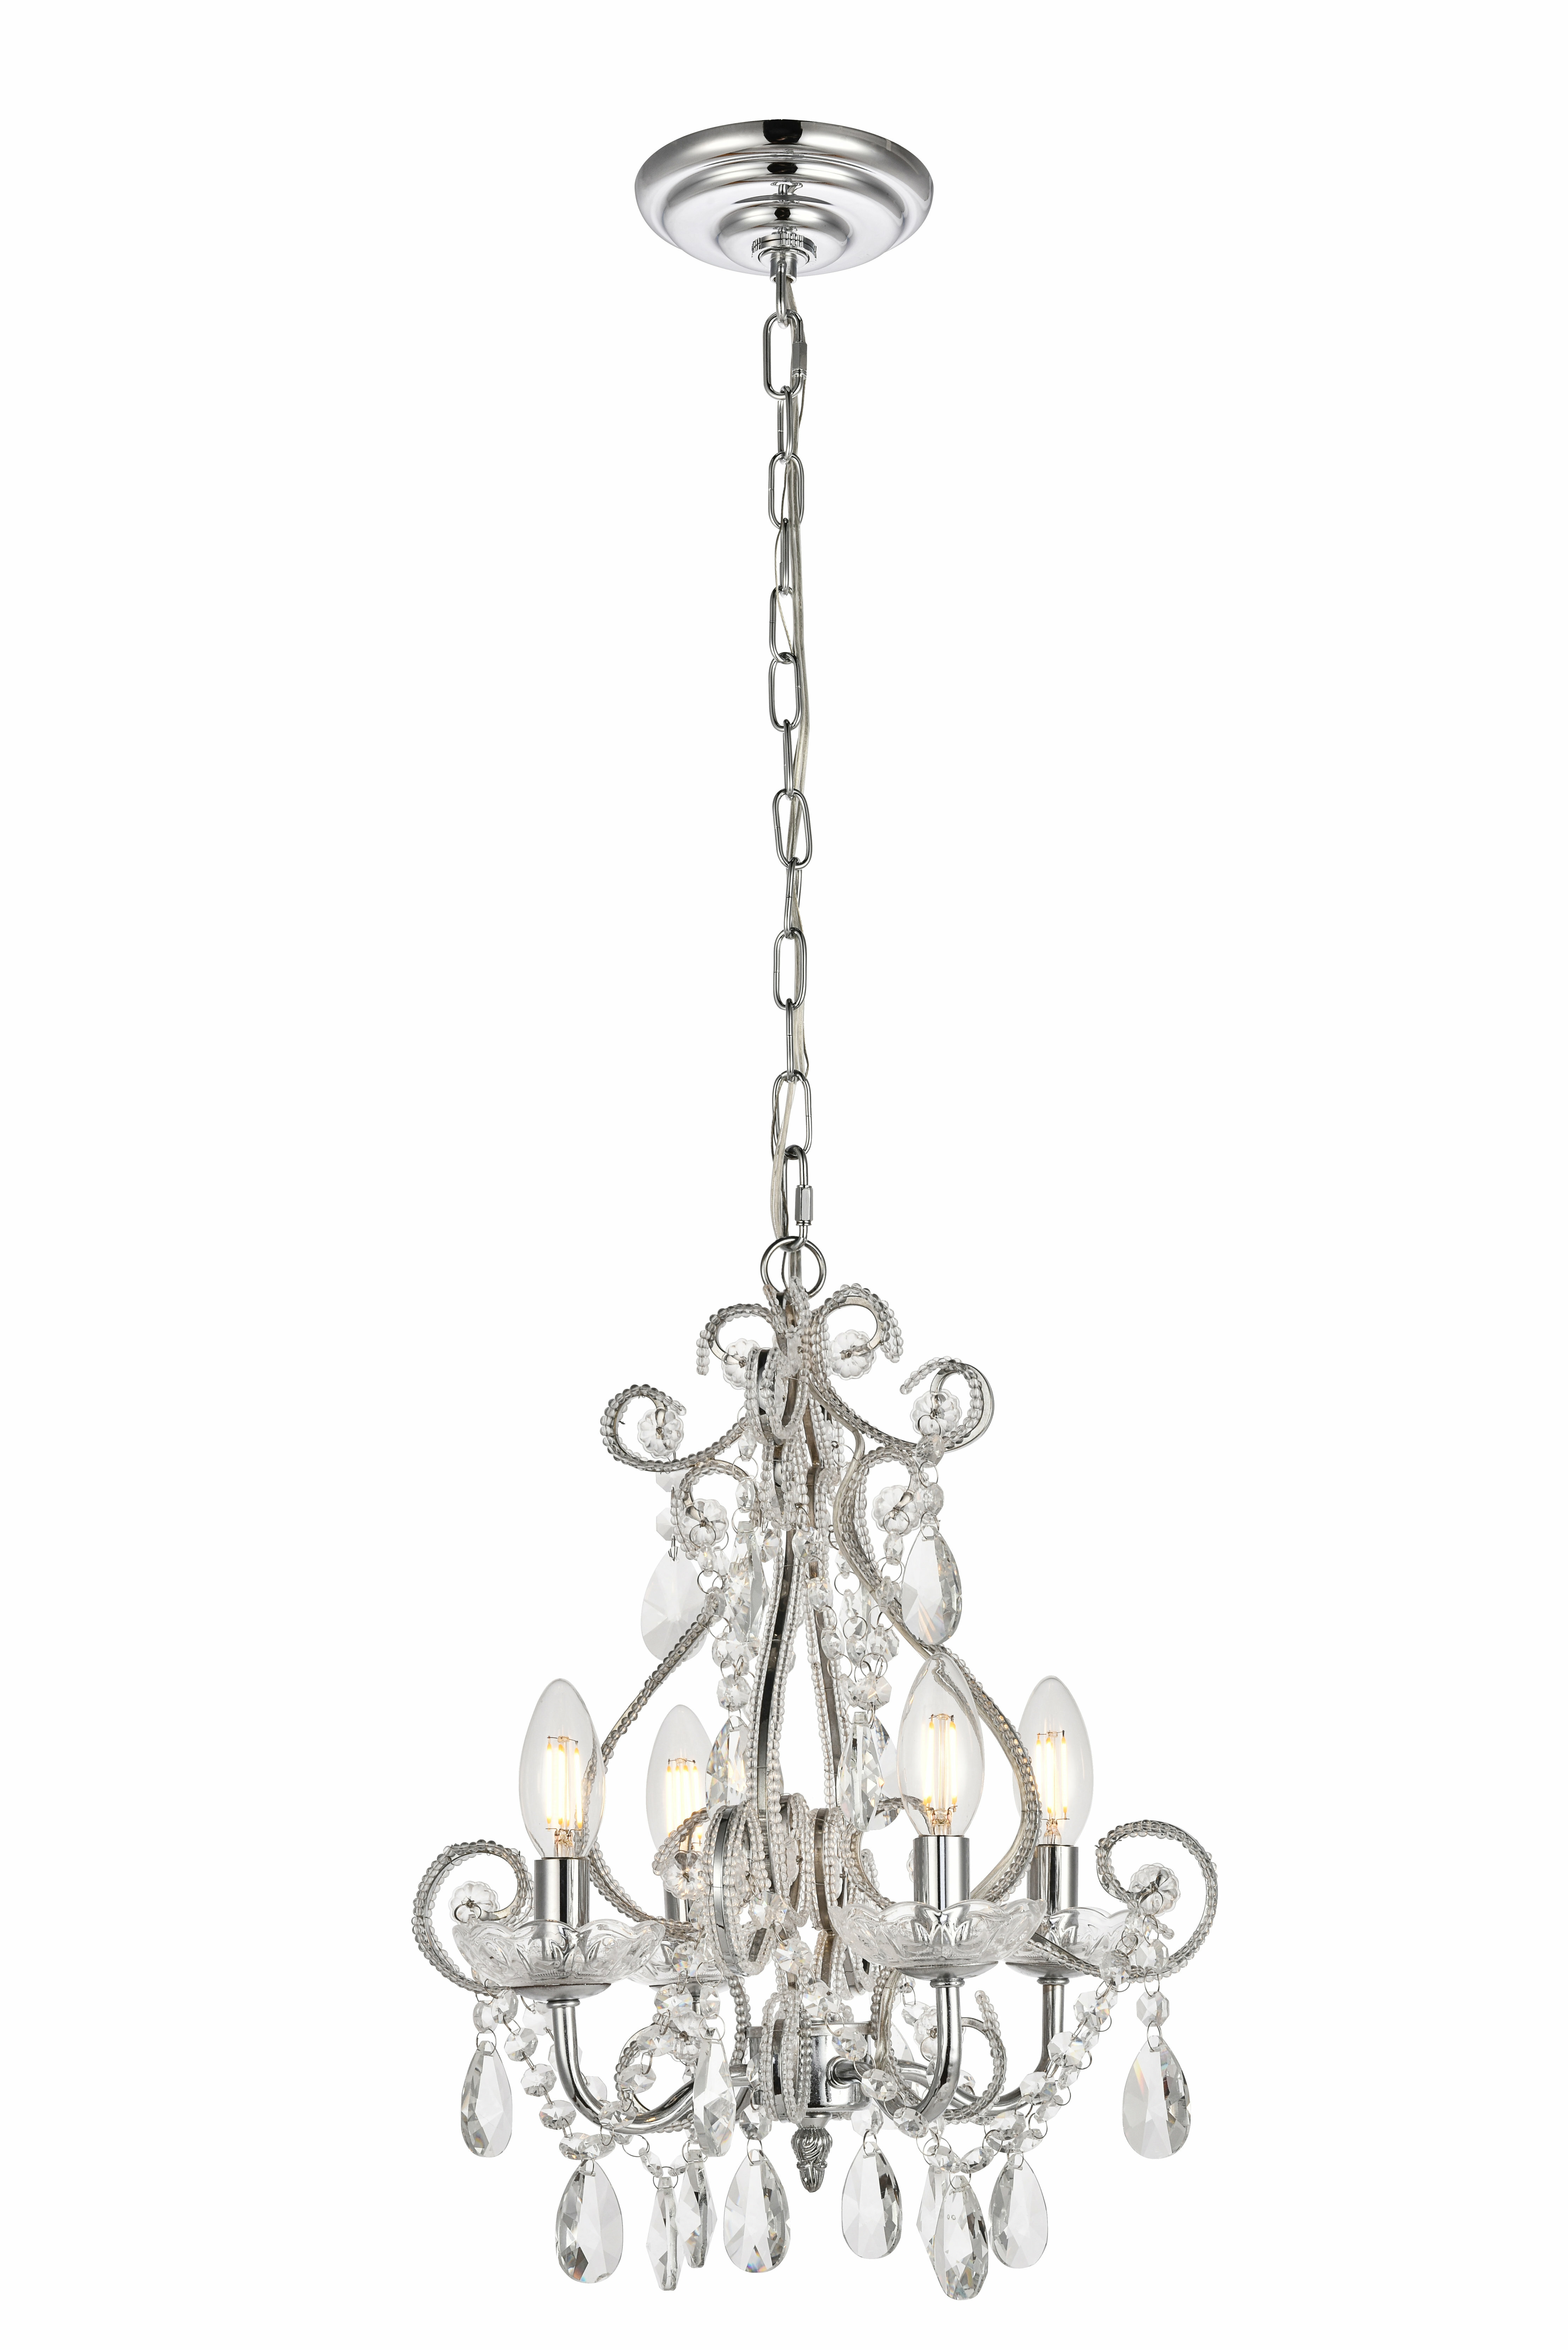 casual small sg in chc beads visual belgian product mini chapman chandelier com comfort with e white flanders glass seeded f foundrylighting